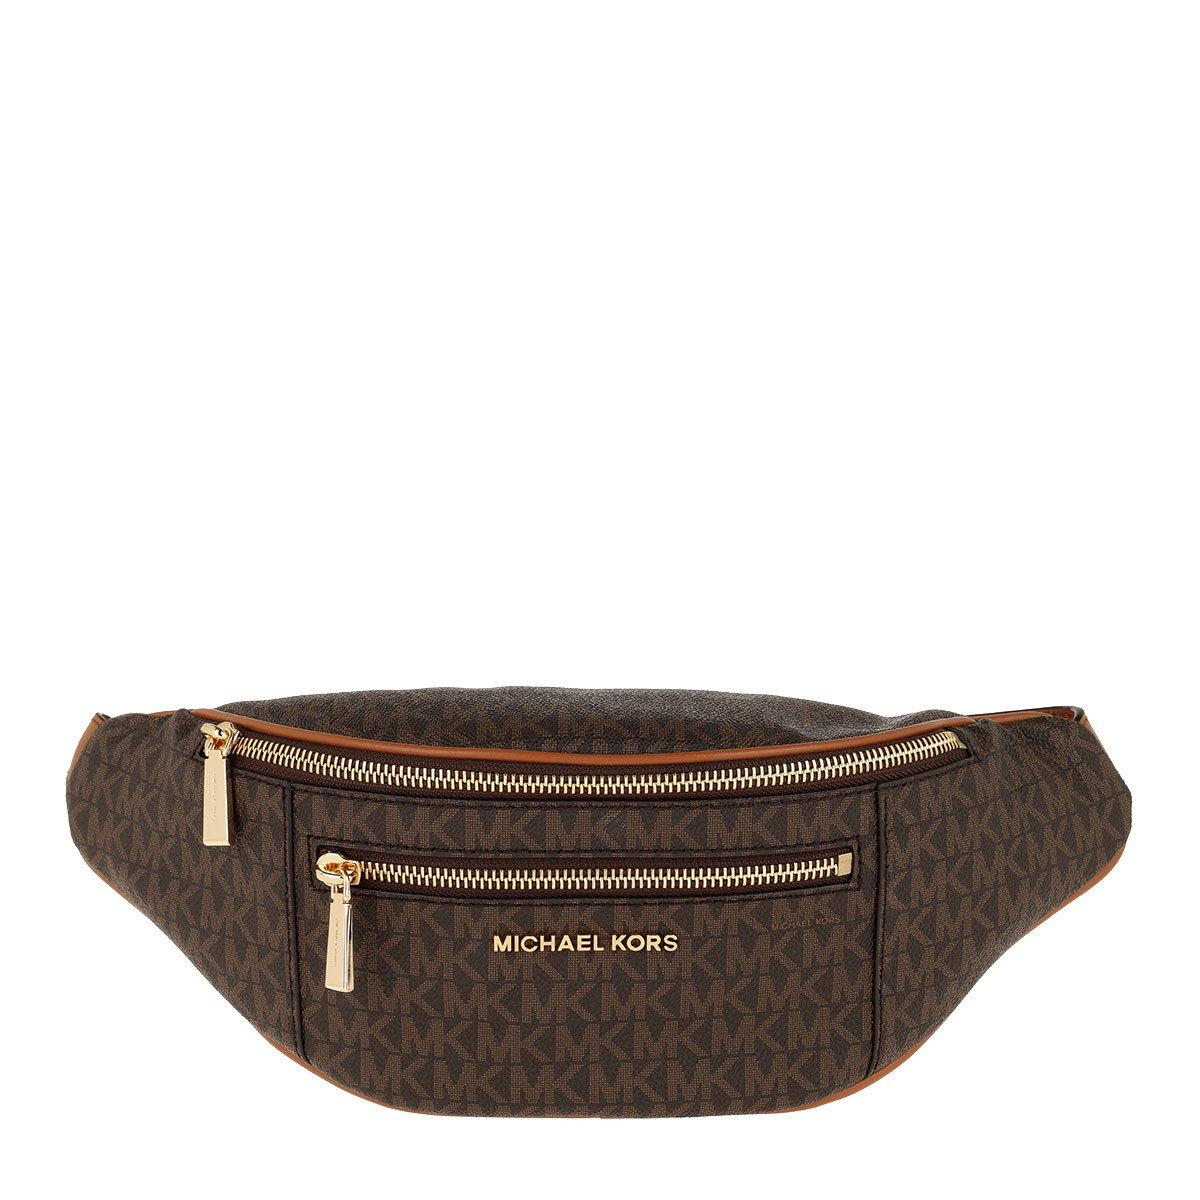 Michael Kors Gürteltasche - Mott Medium Belt Bag Brown/Acorn - in braun - für Damen